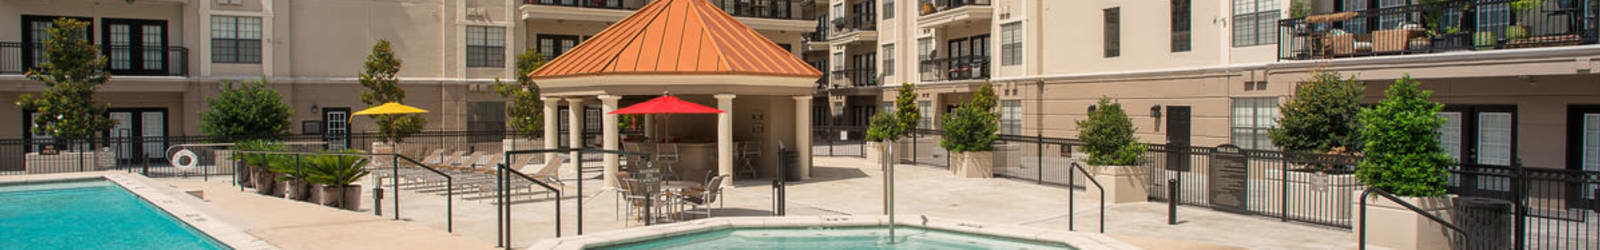 Guest suites at Chateau de Ville in Farmers Branch, Texas